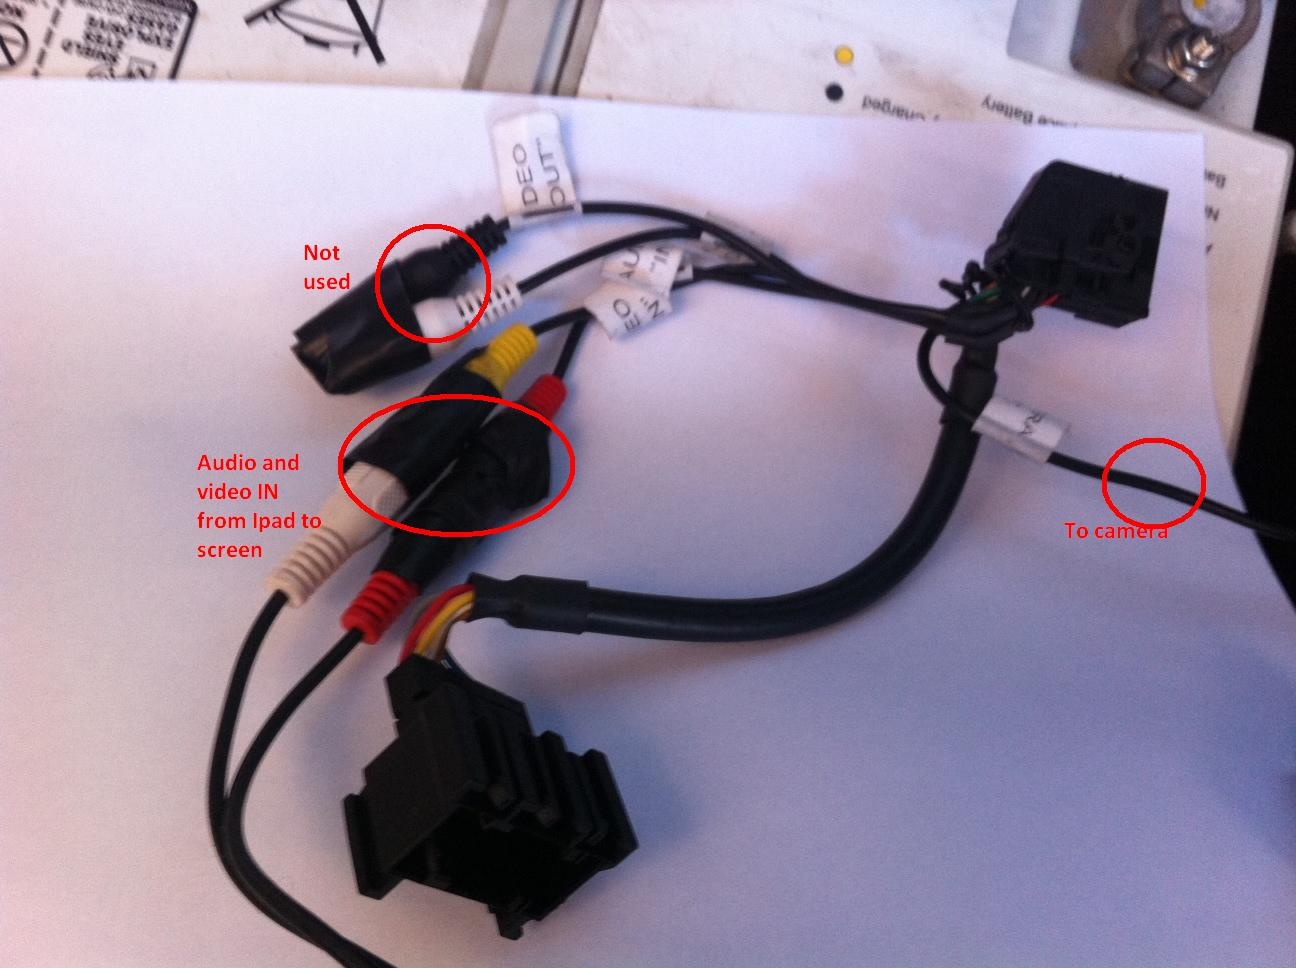 X5 Backup Camera Wiring Diagram Tundra How To Connect Ebay Navi Page 9 Xoutpost Com Rh Schematic